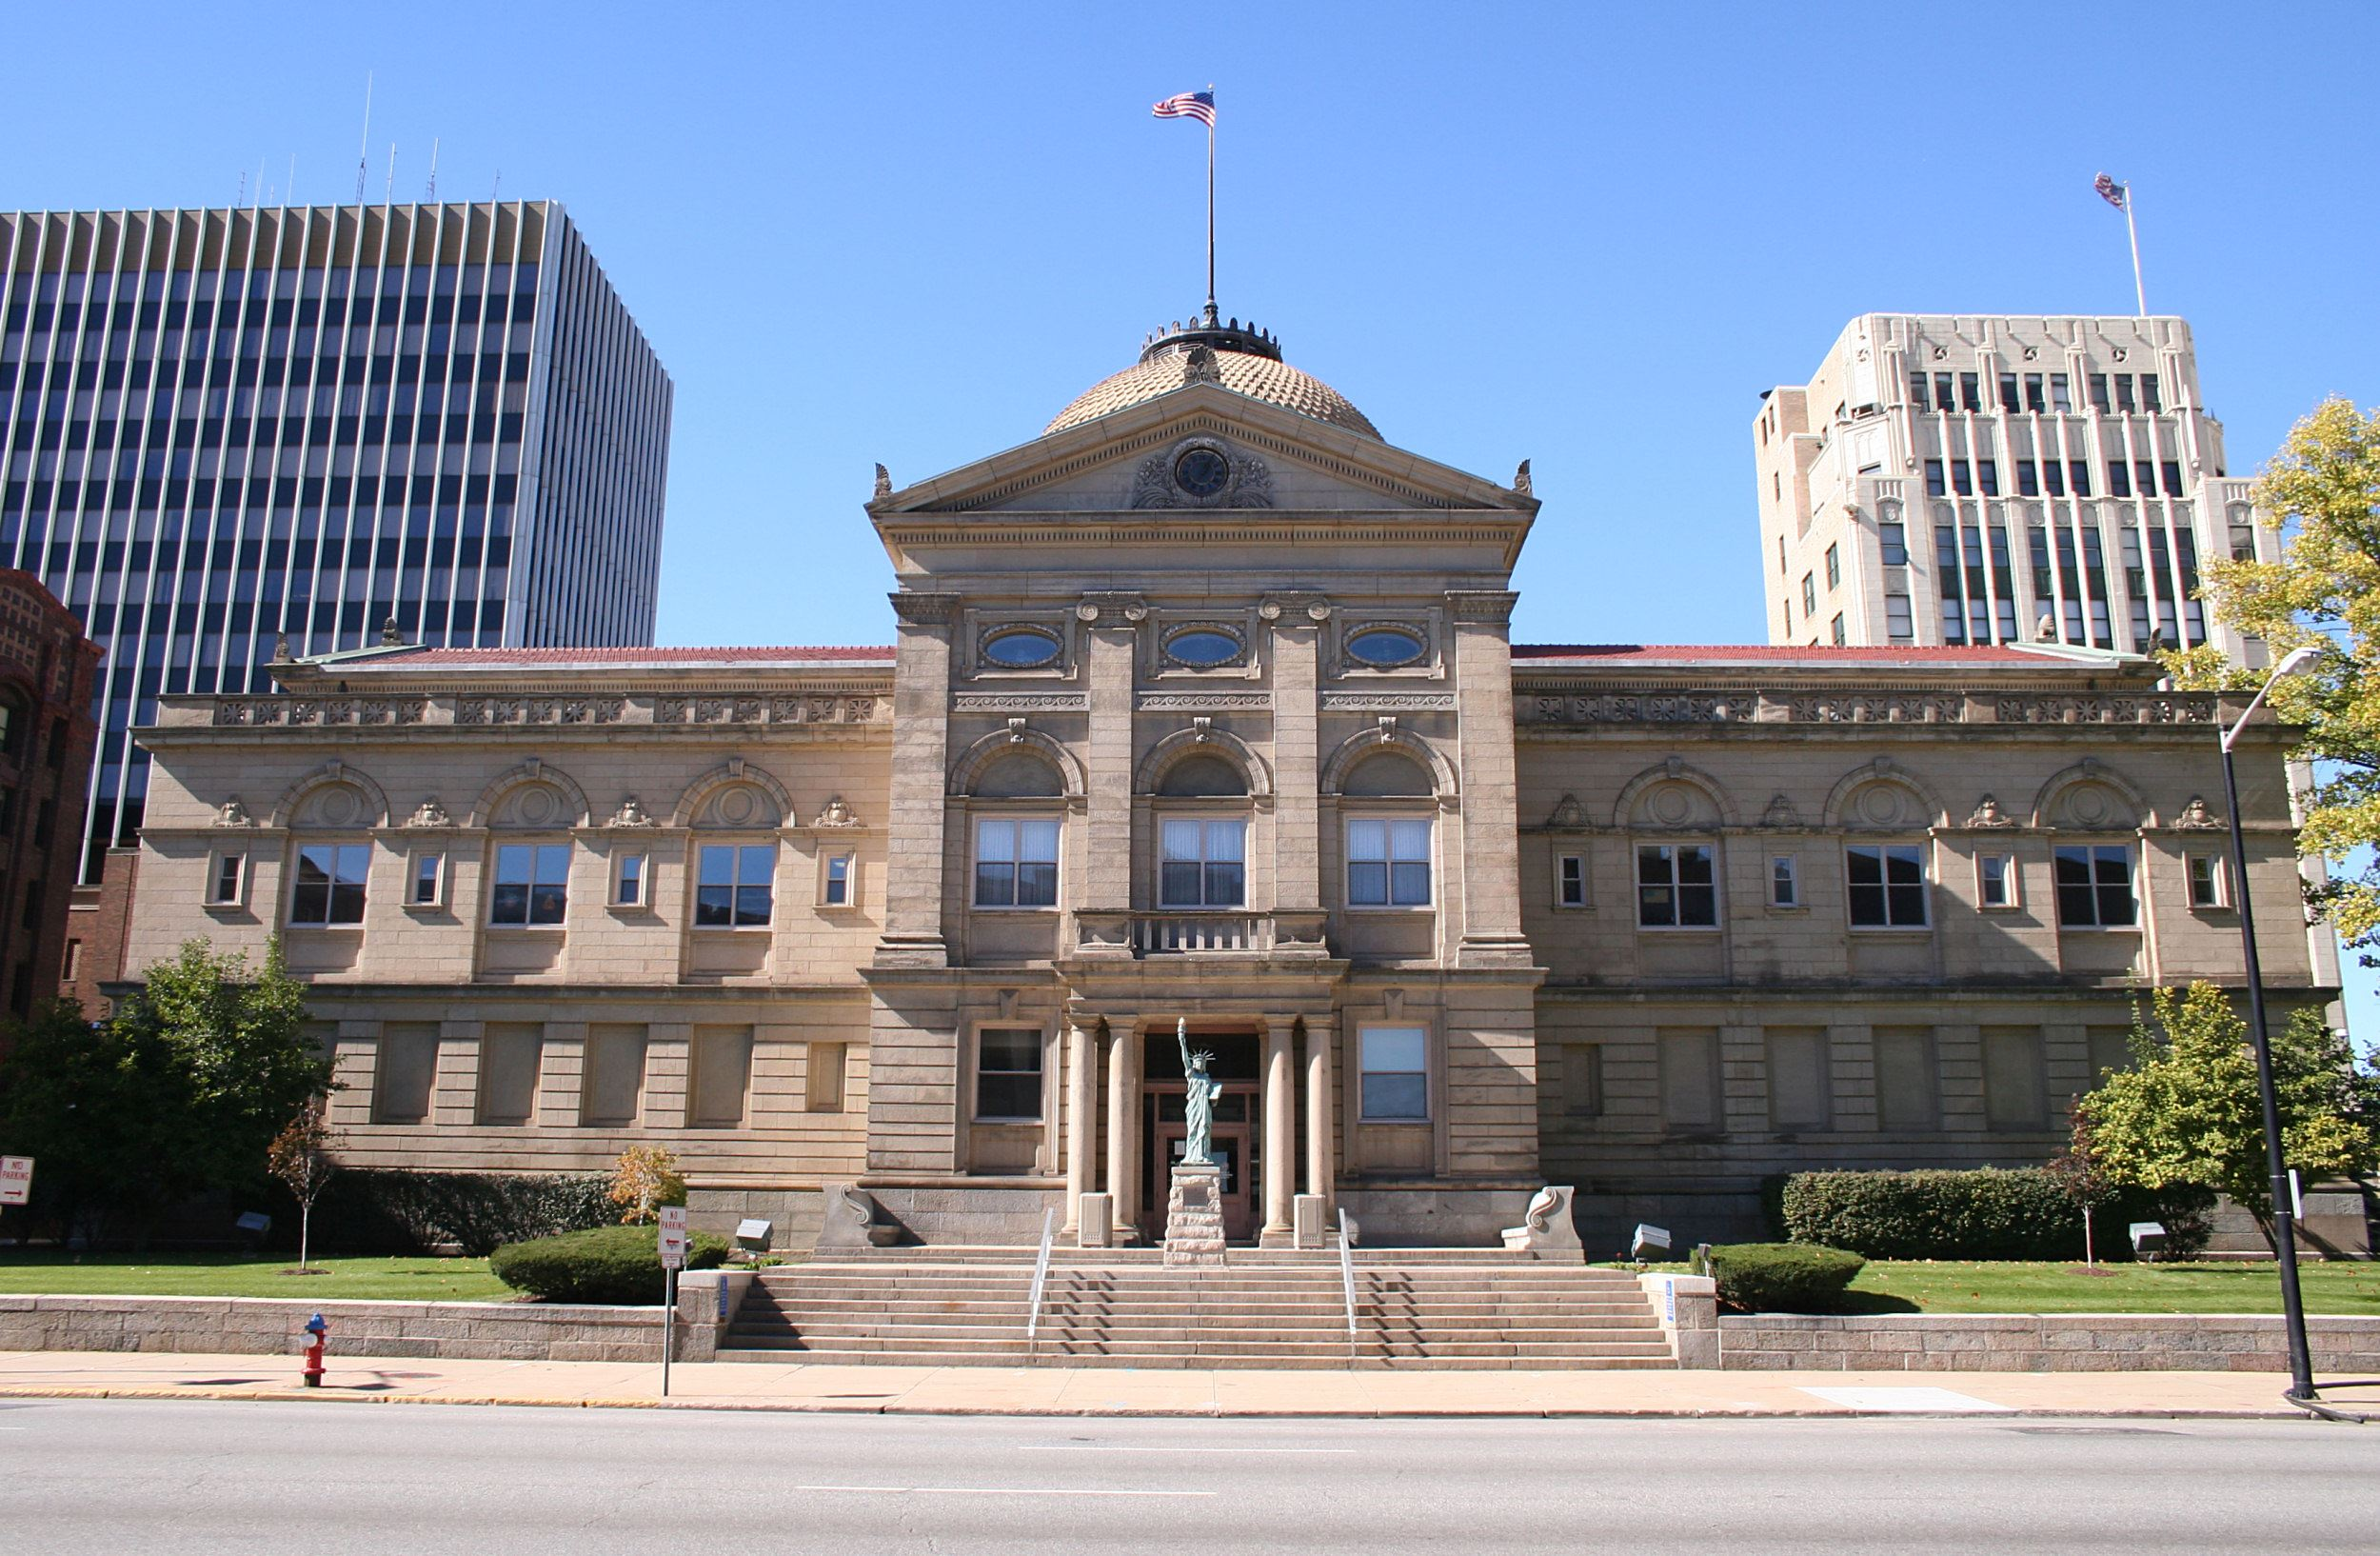 This is a picture of Courthouse 1 located at 101 S. Main Street South Bend, IN 46601